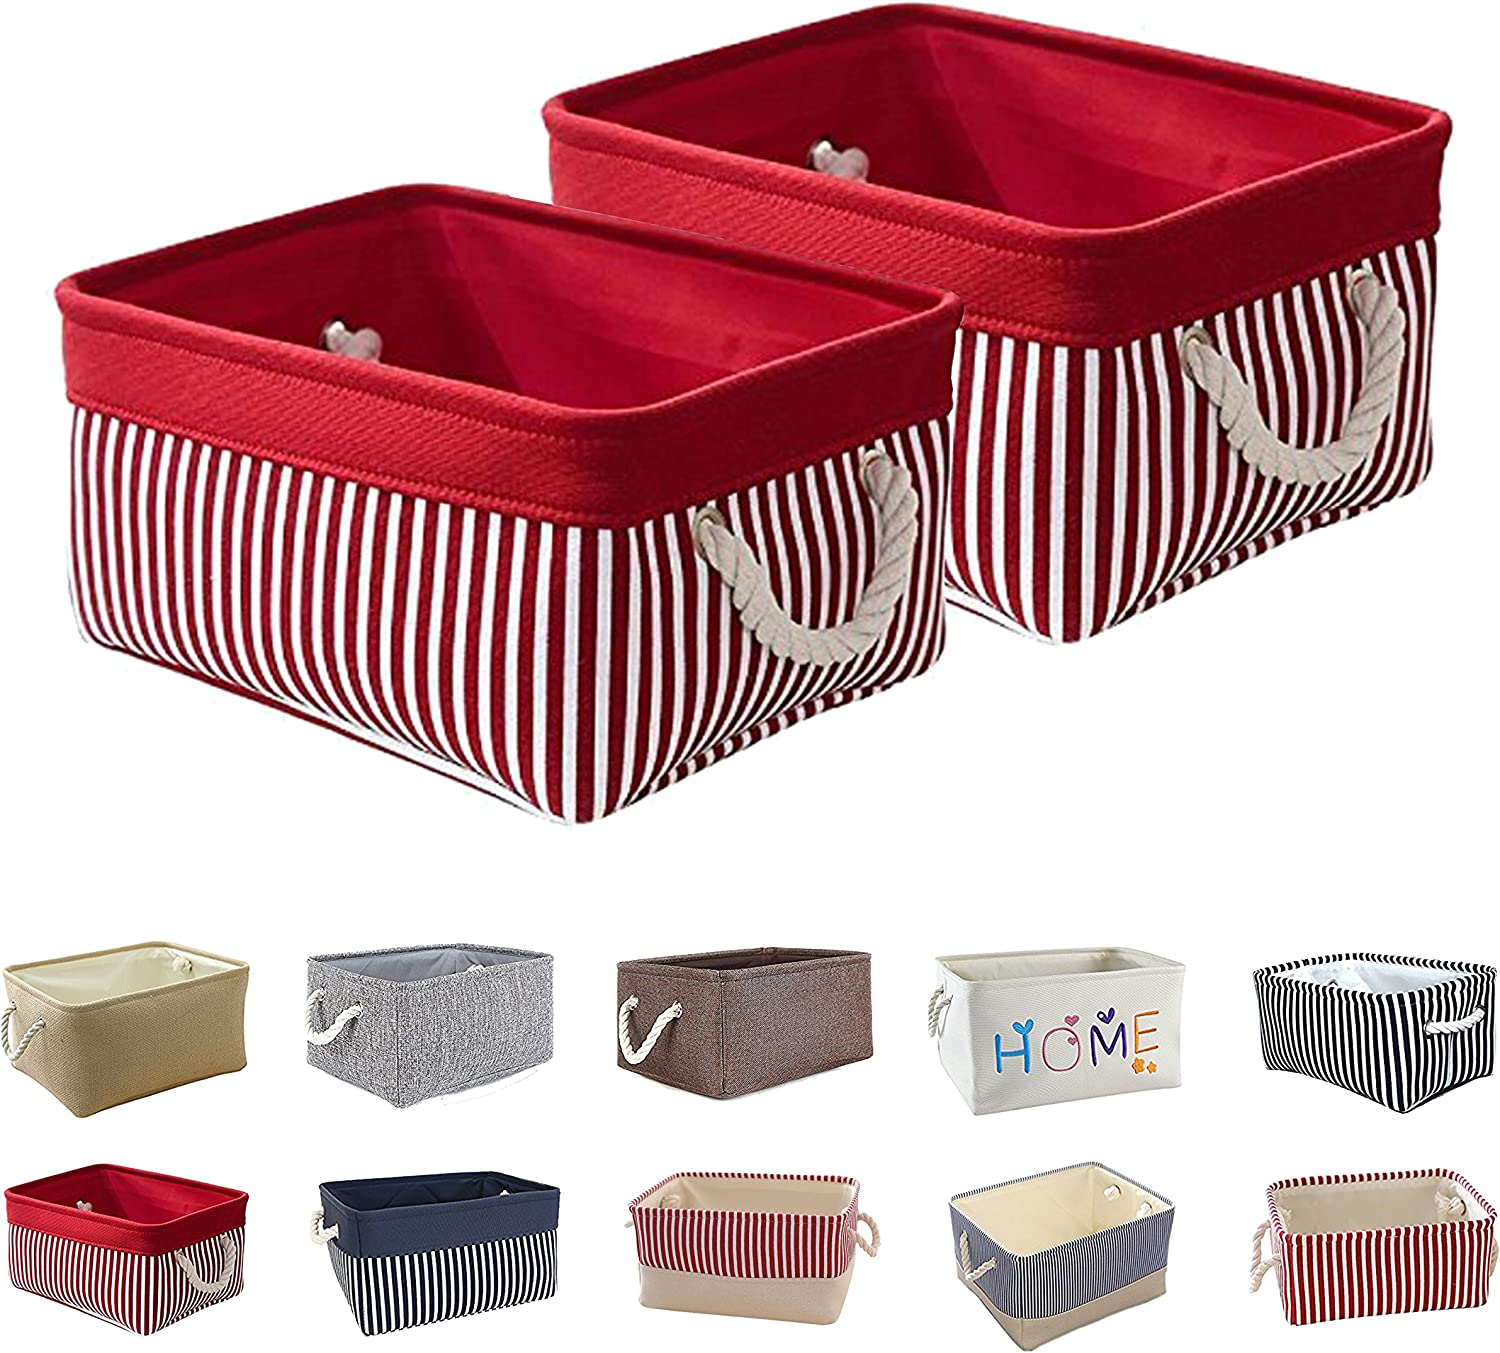 Queenie 2 Pack Collapsible Fabric Storage Basket Home Organizer and Sizes (Solid Red & Red Stripe, 35 x 25 x 17 cm (13.75 x 9.75 x 6.75 Inch))